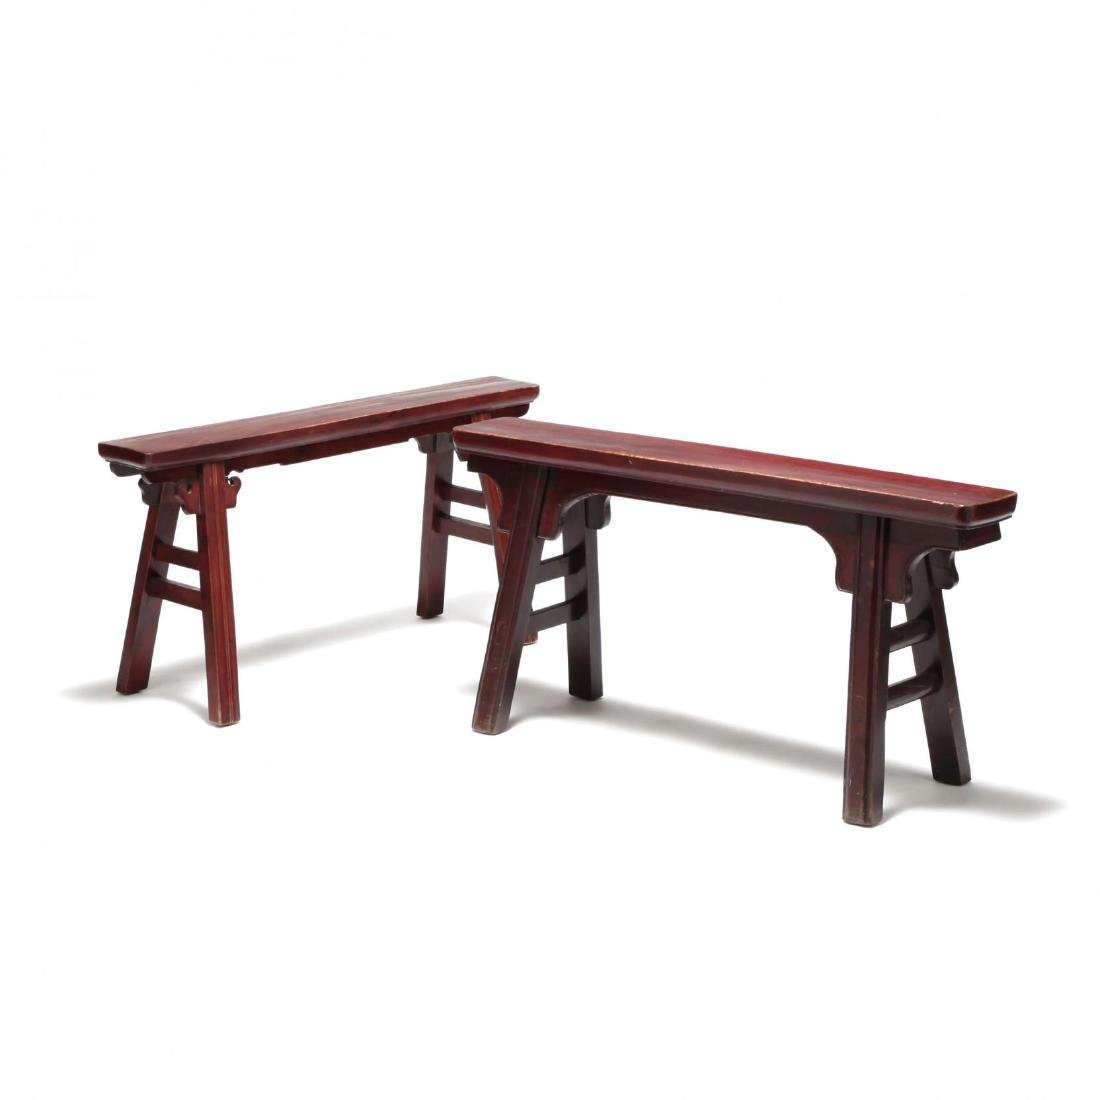 Two Chinese Wooden Benches - 4